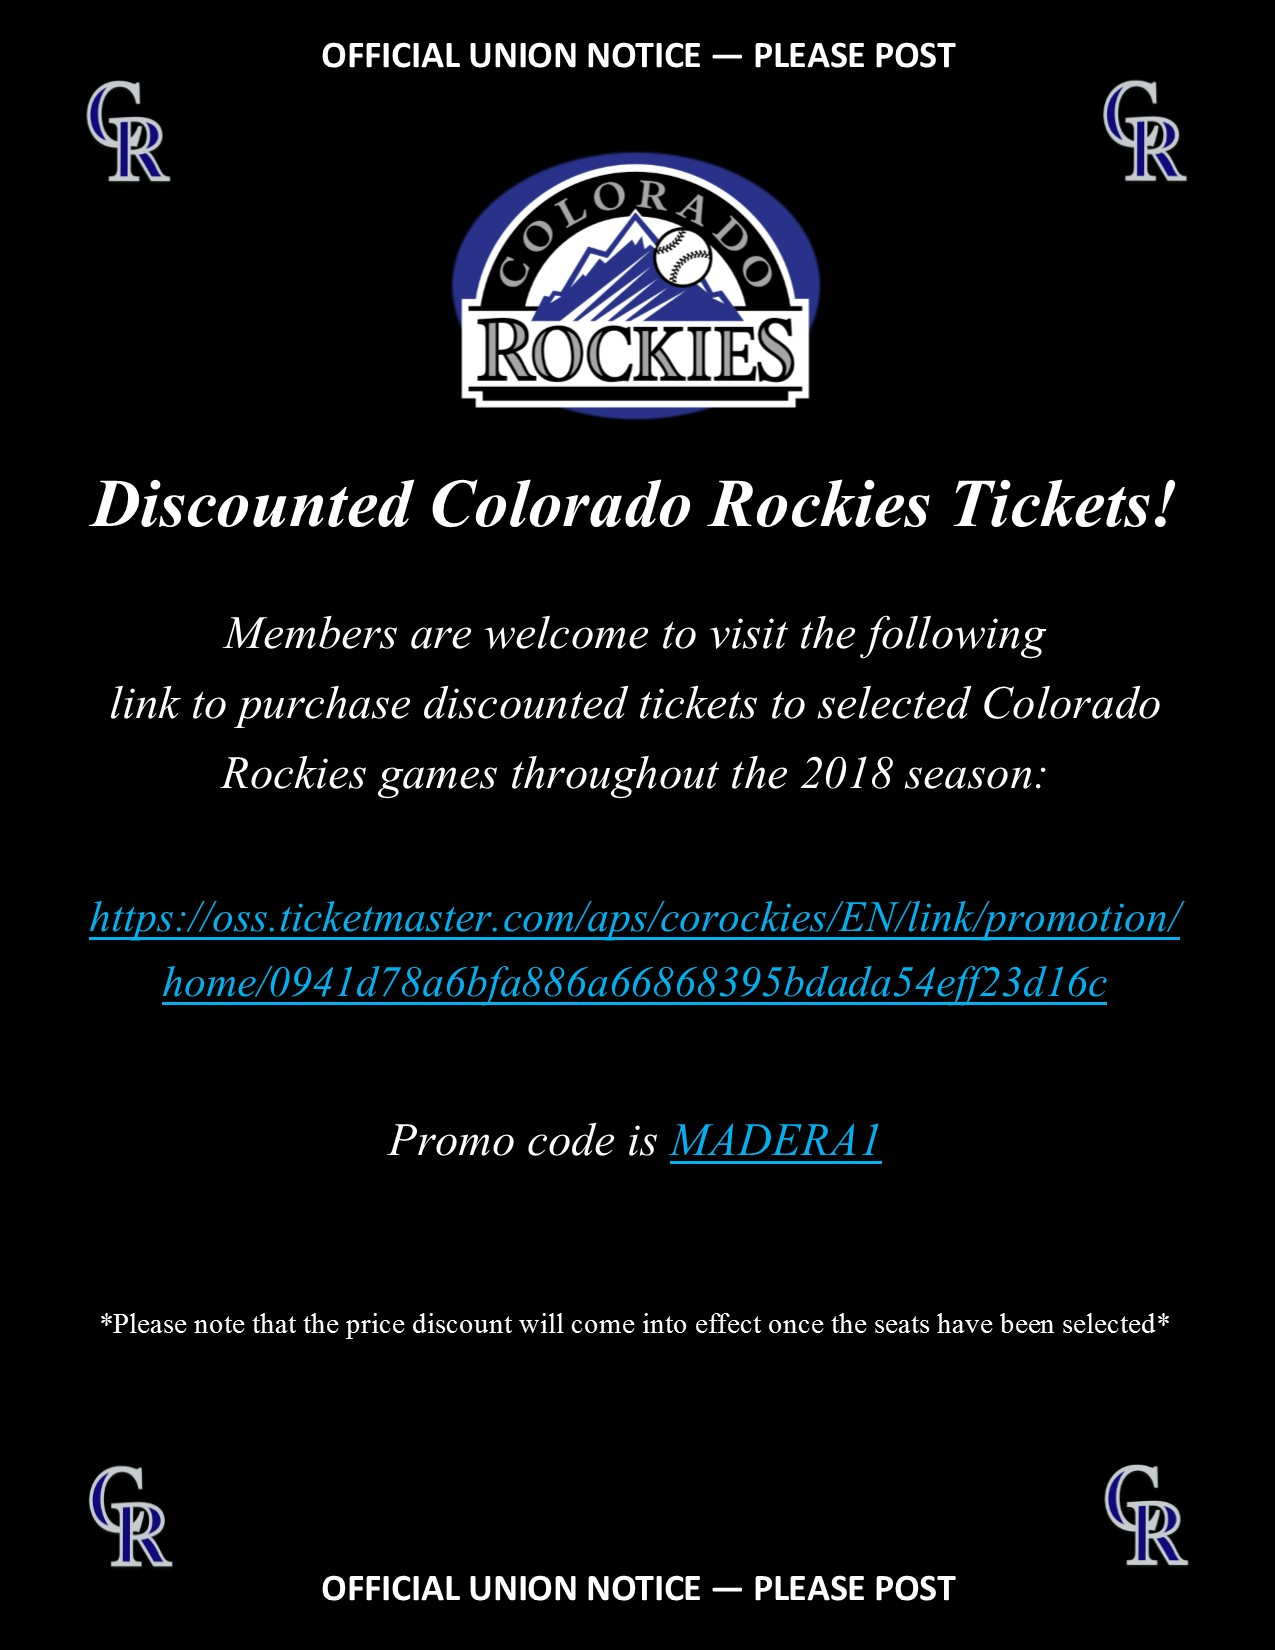 Discounted Colorado Rockies Tickets